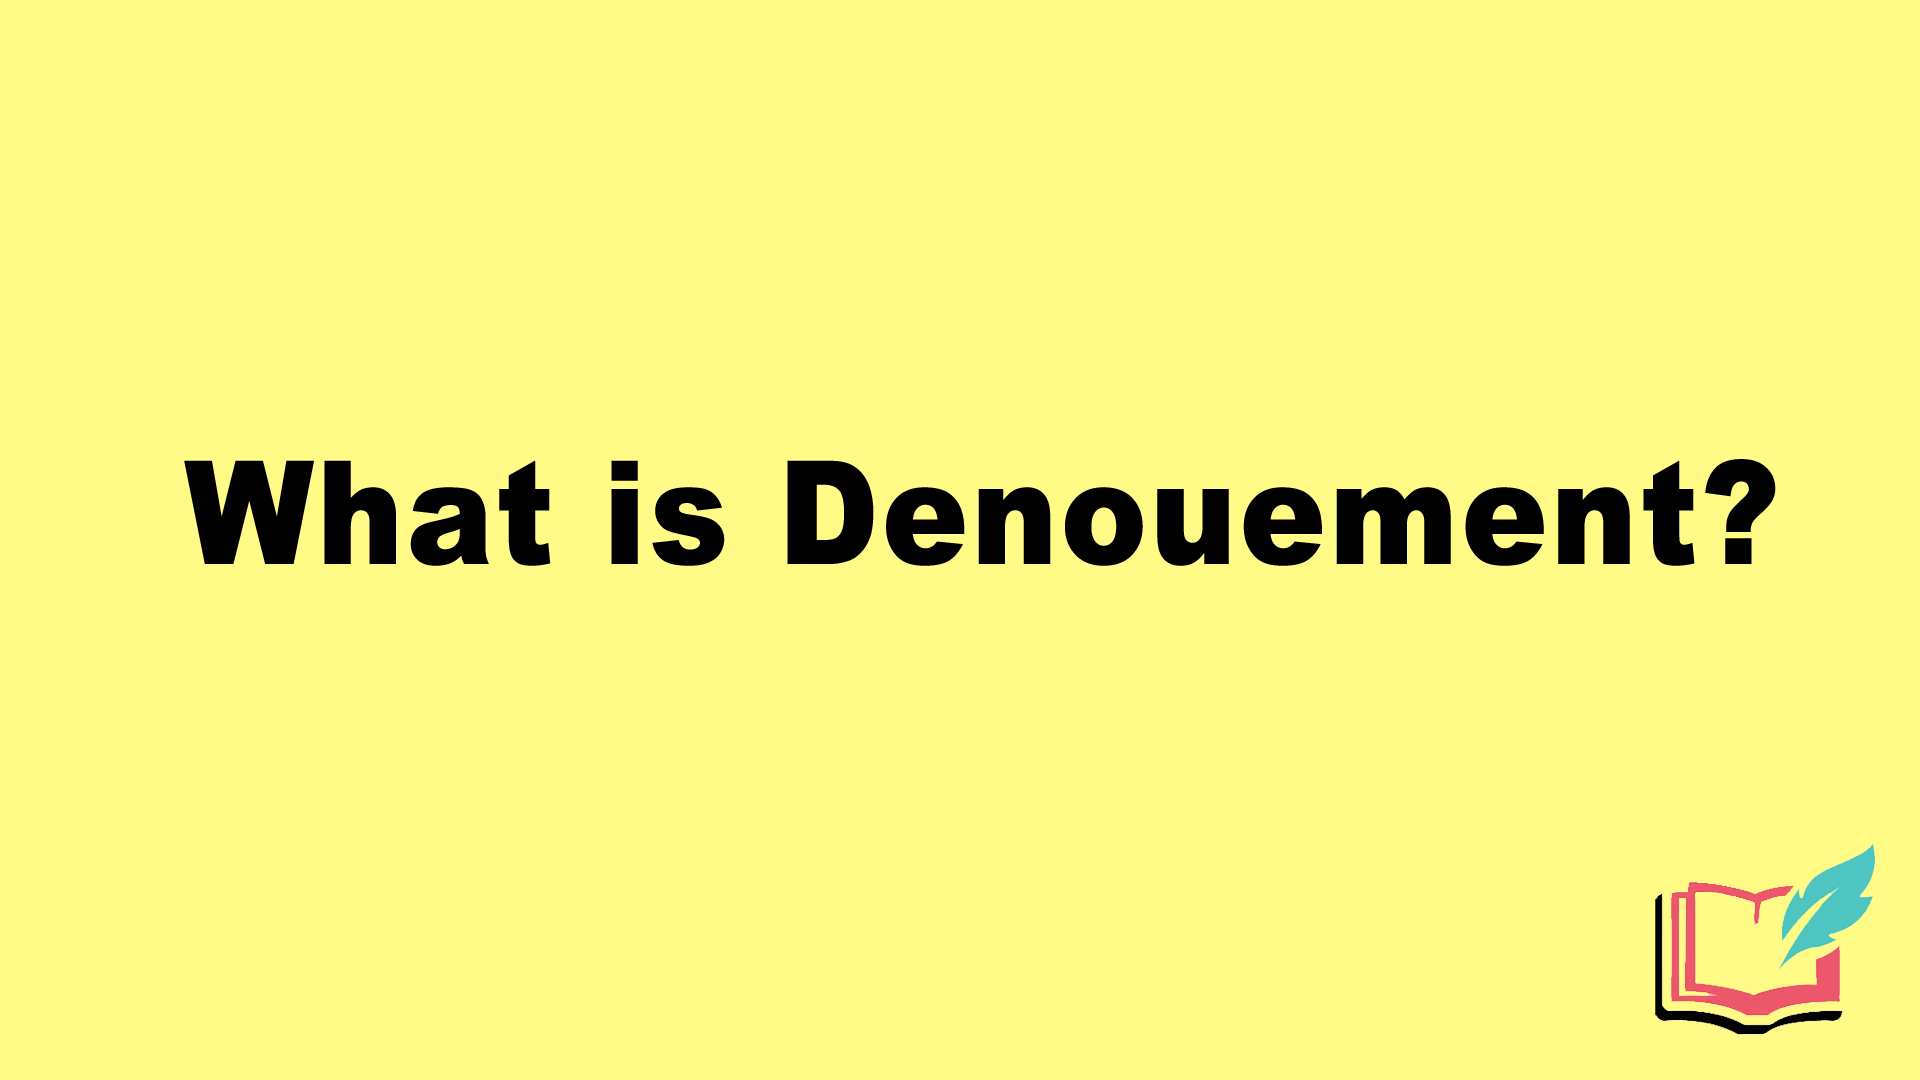 what is denouement in literature